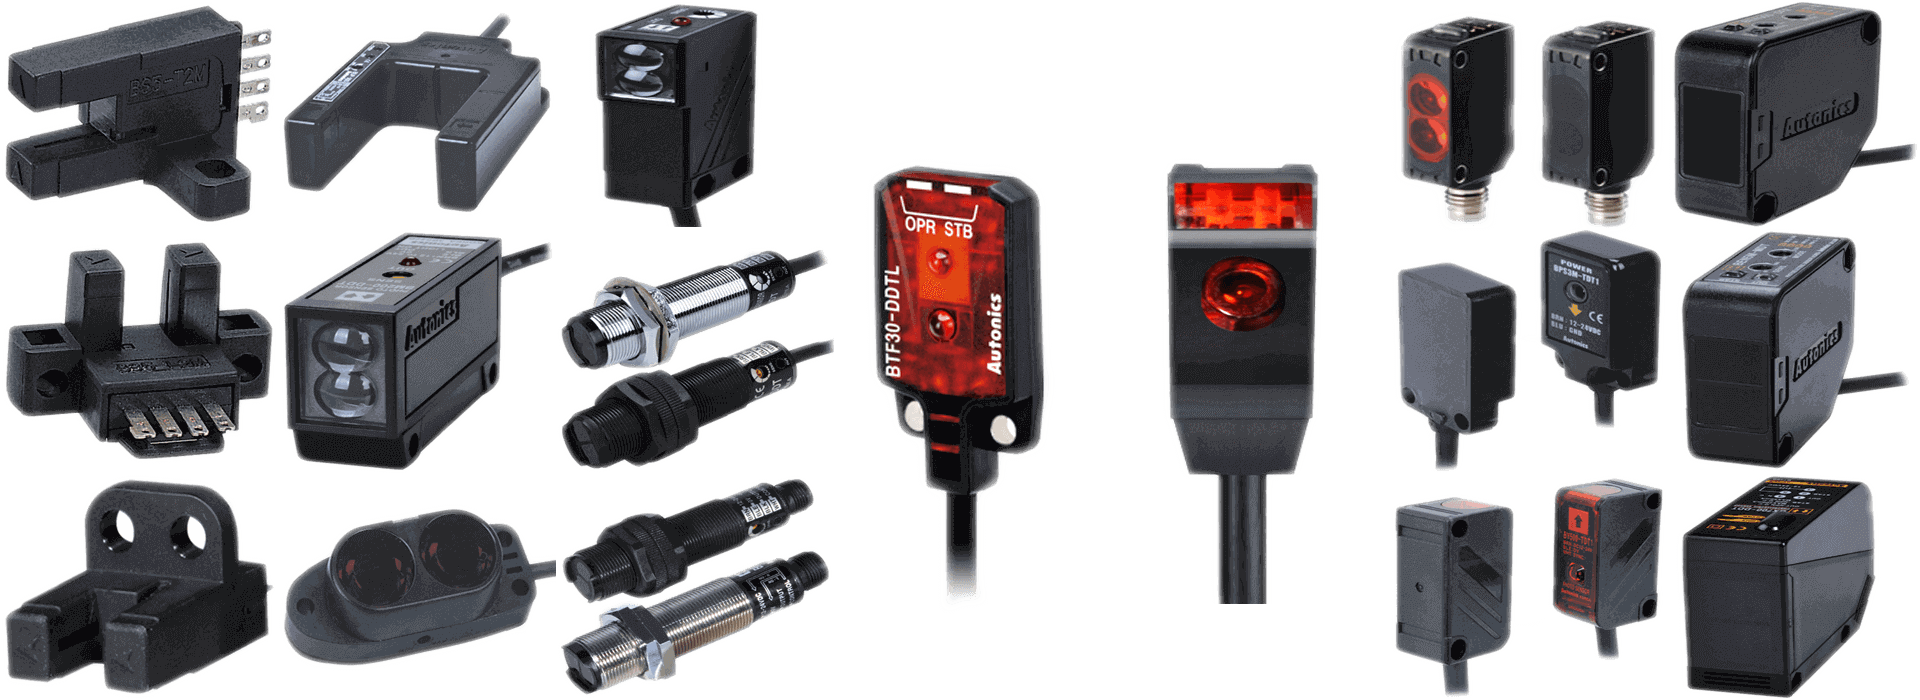 autonics photoelectric sensors